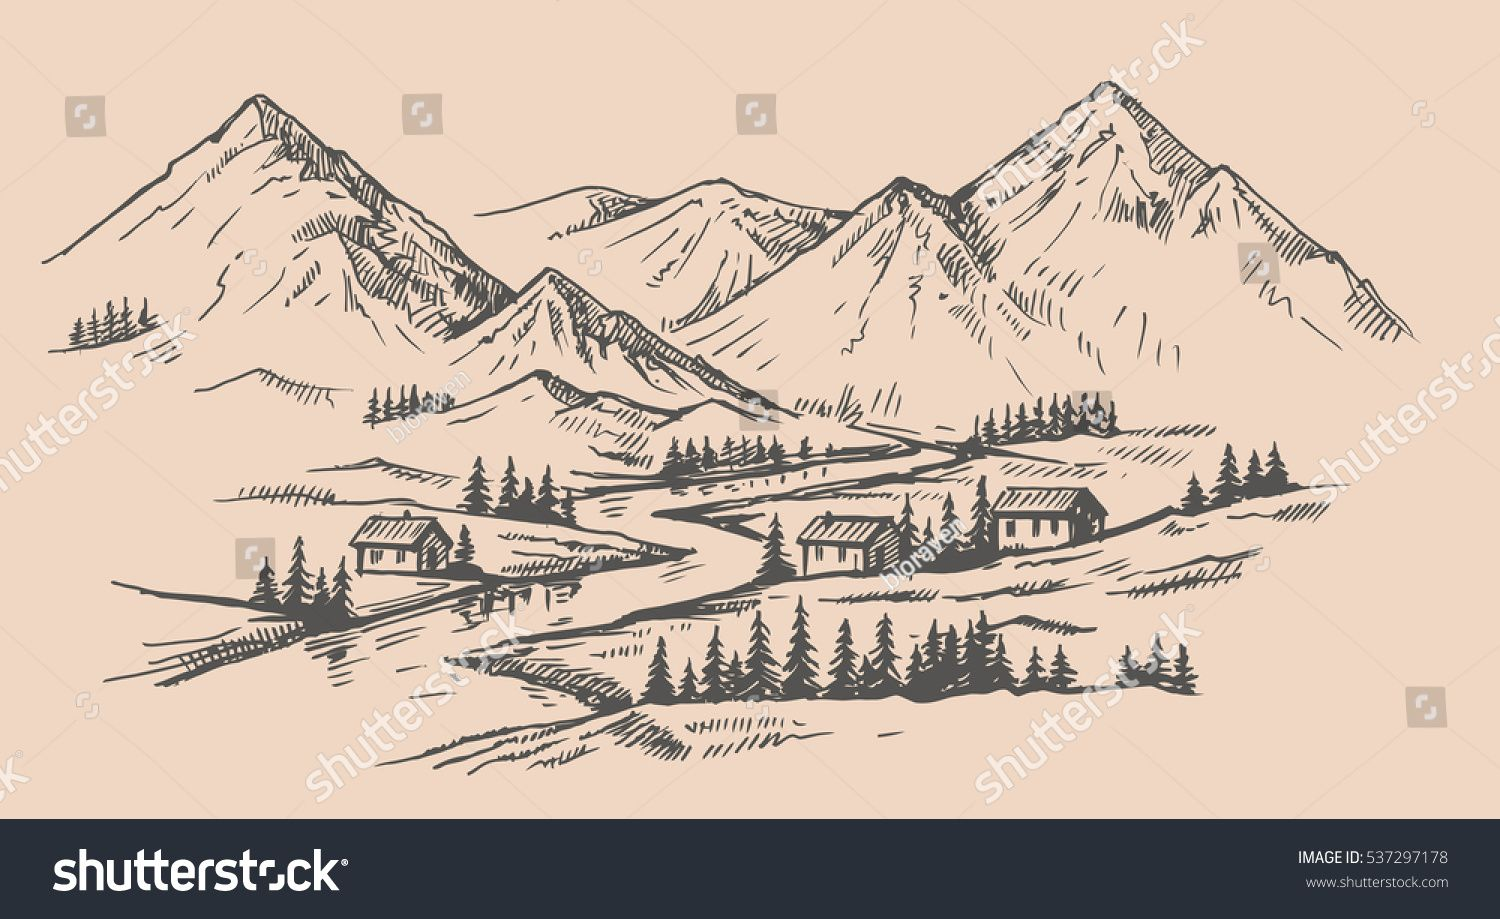 Wood Cabins In Mountain Landscape Vector Illustration Mountain Landscape Vector Illustration Cabin Tattoo